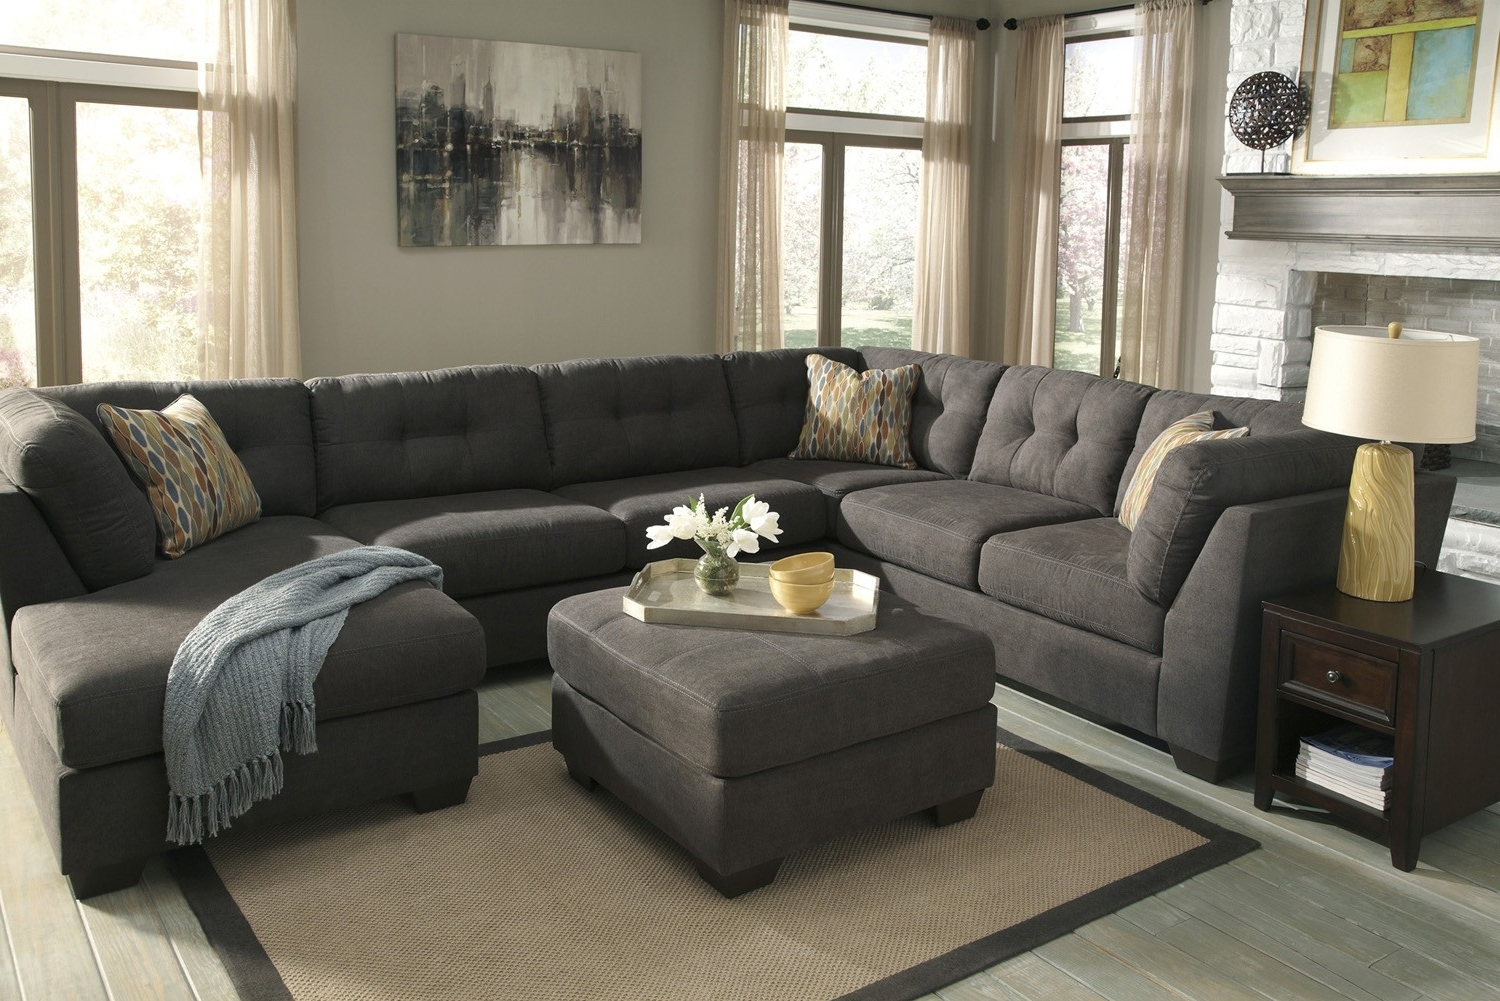 Most Current 3 Piece Sectional Sleeper Sofas For Delta City Steel 3 Piece Sectional Sofa With Right Arm Facing (View 9 of 15)